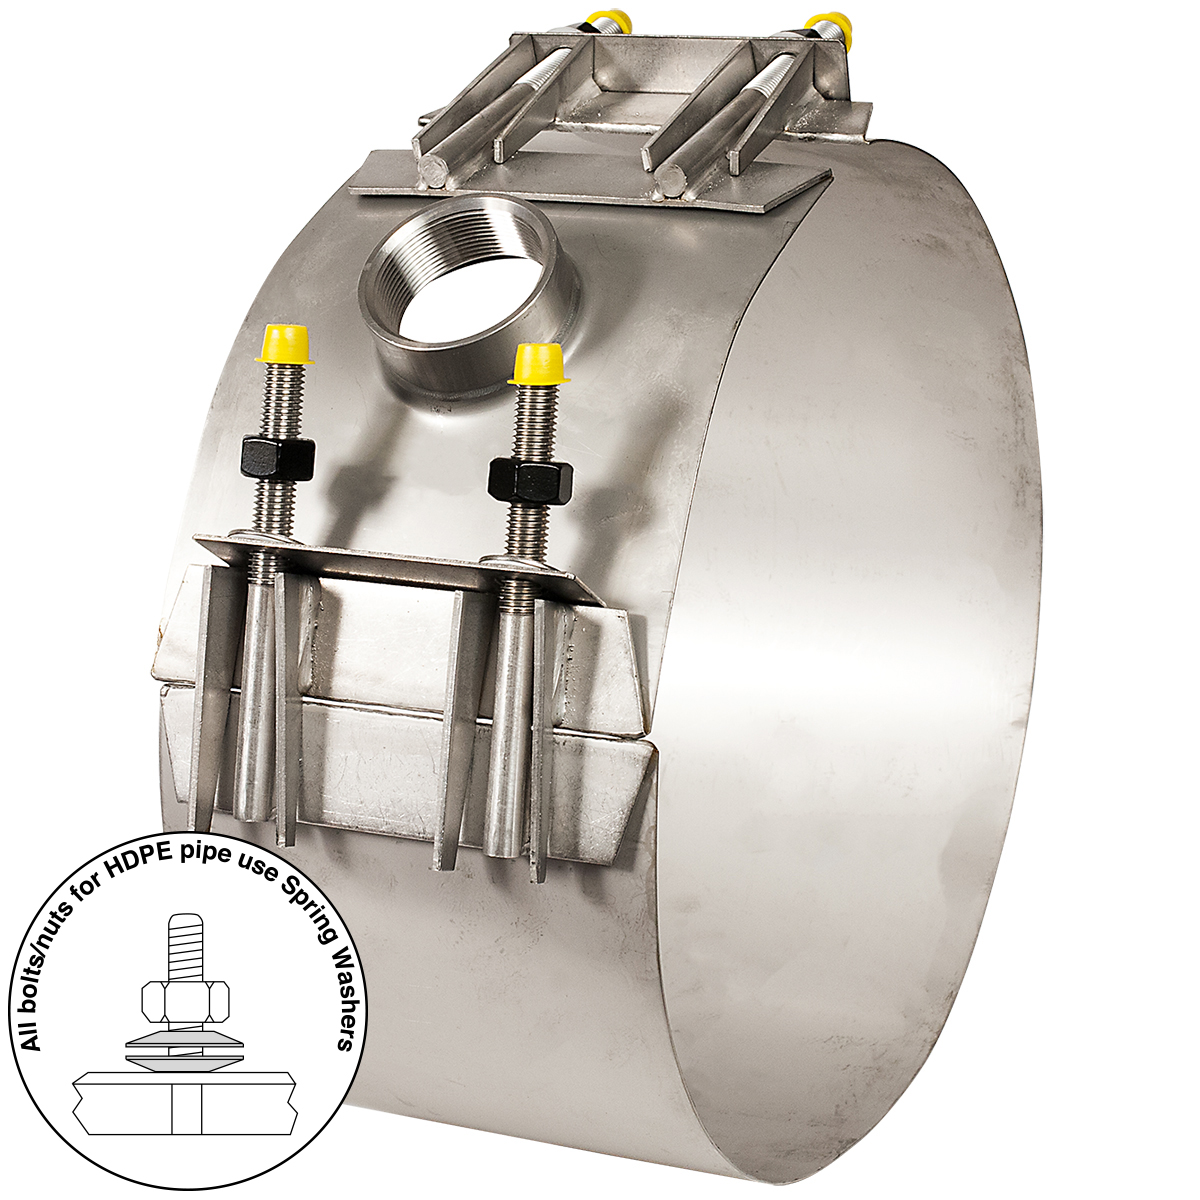 305-H - Stainless Steel Service Saddle for HDPE Pipe